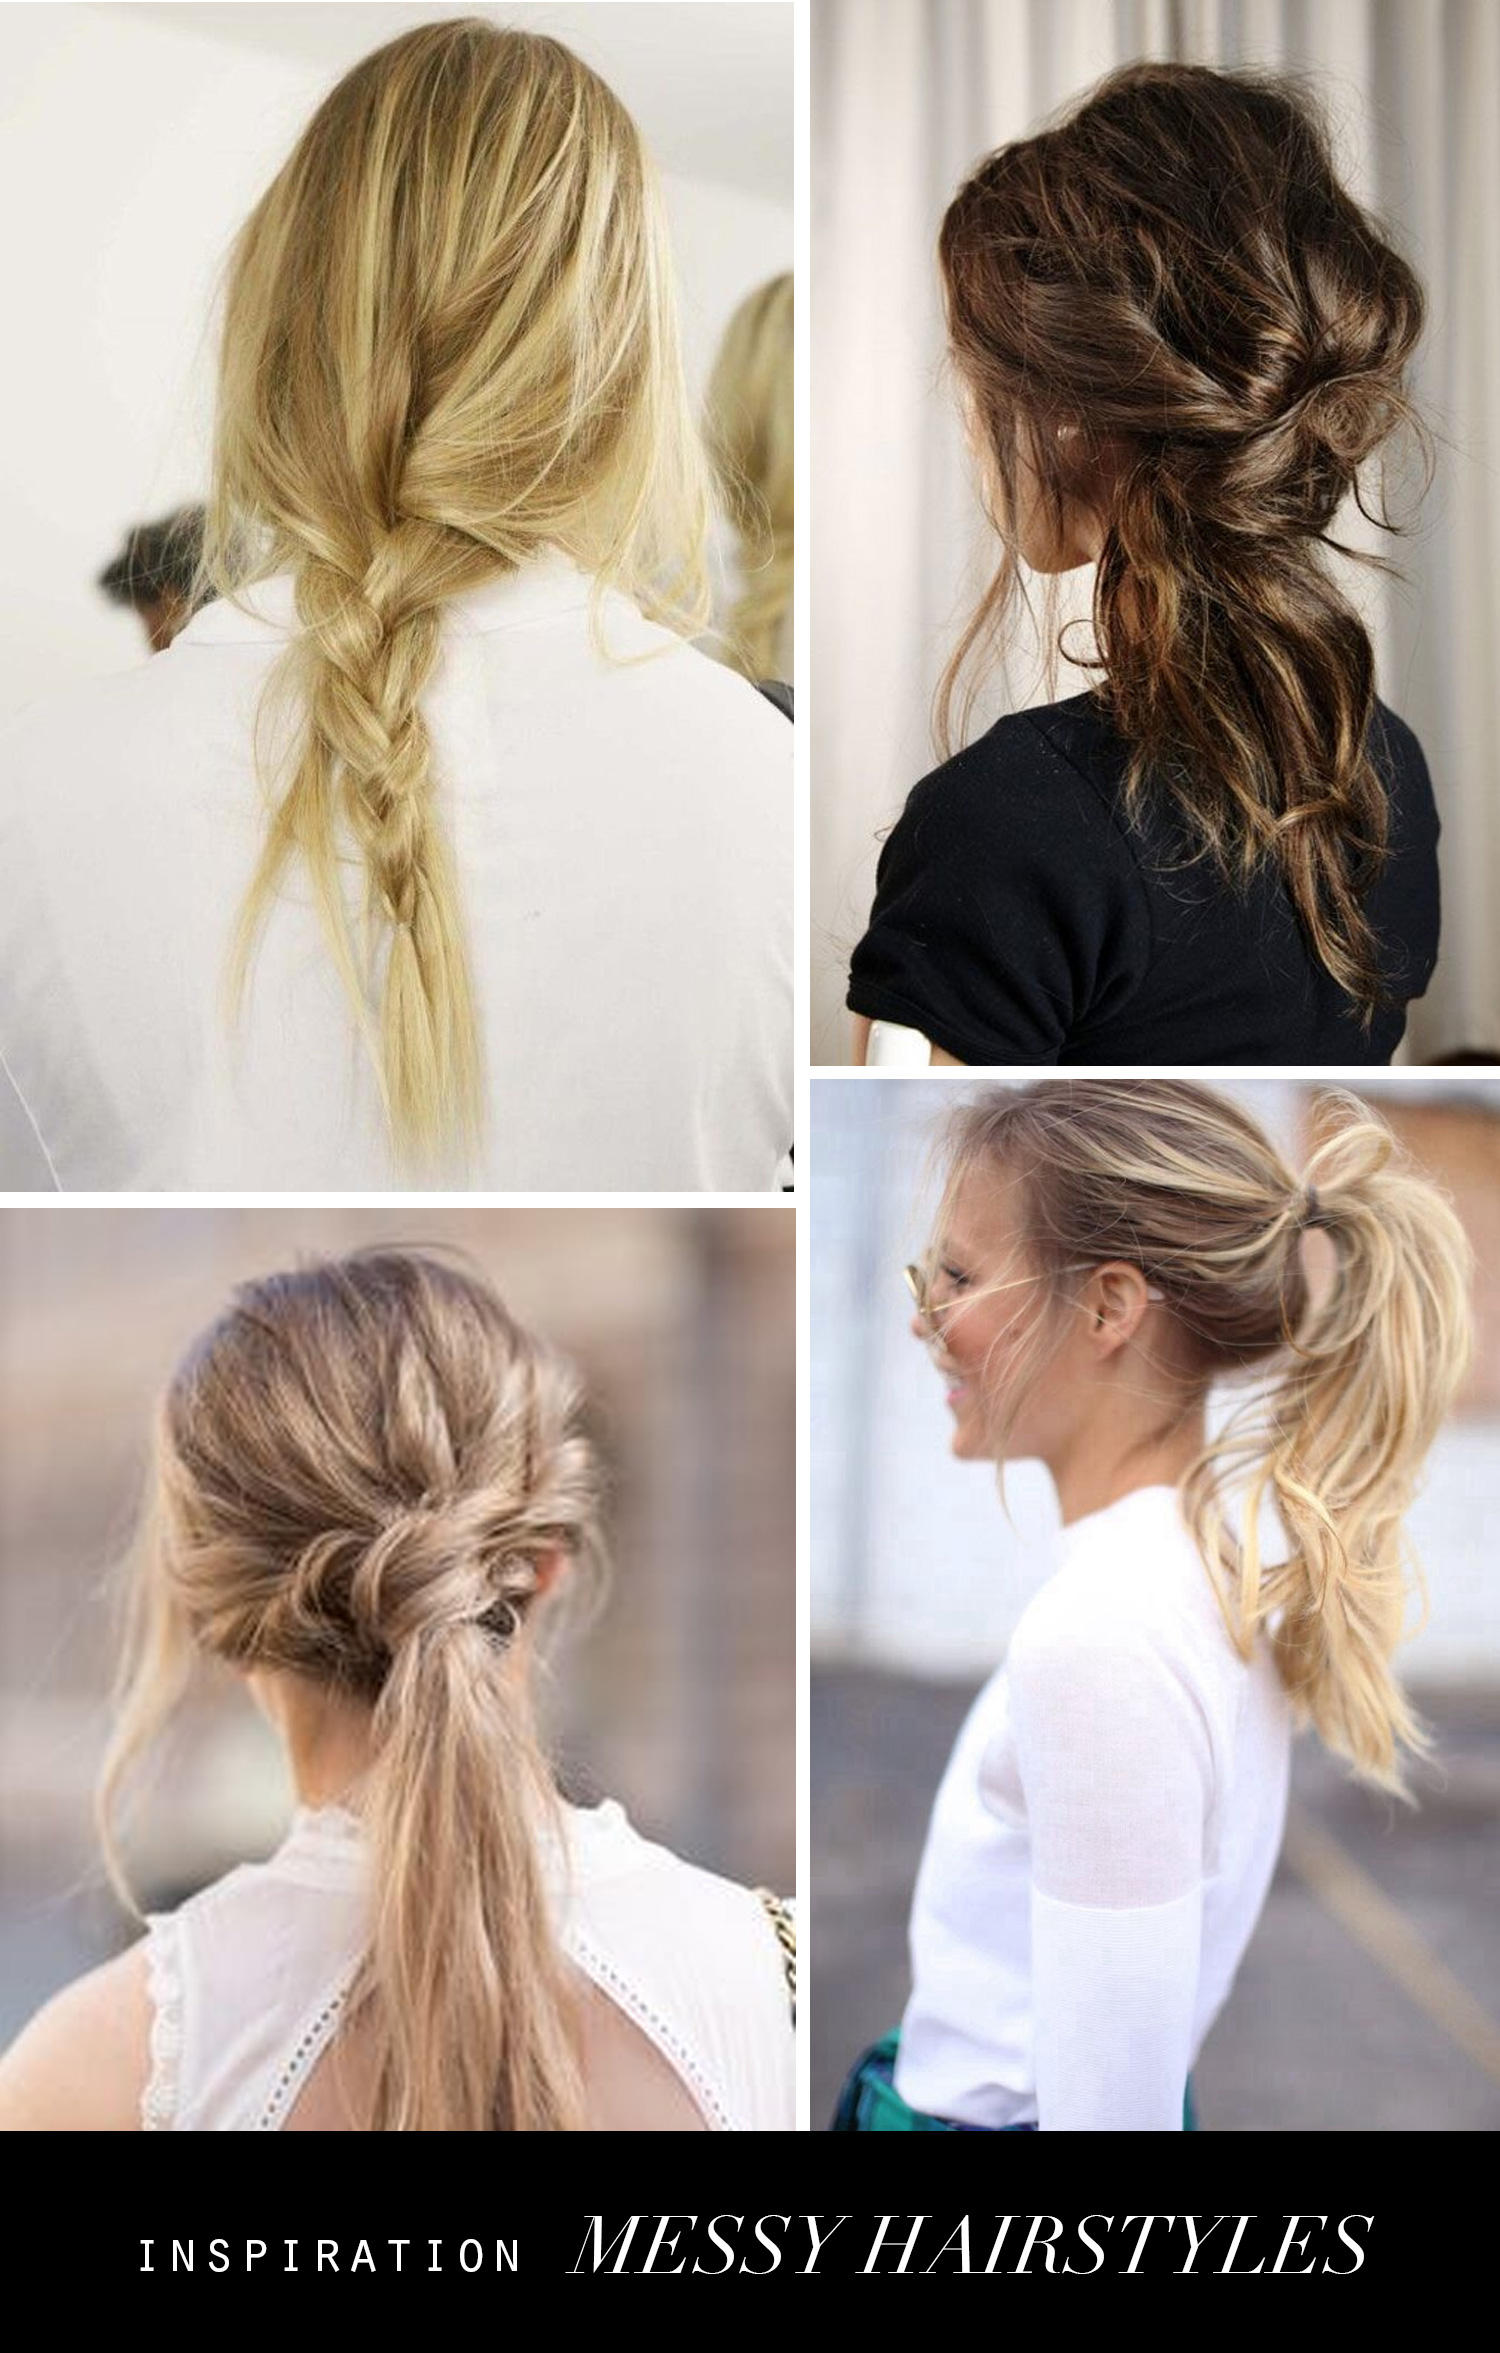 hairstyle@2x